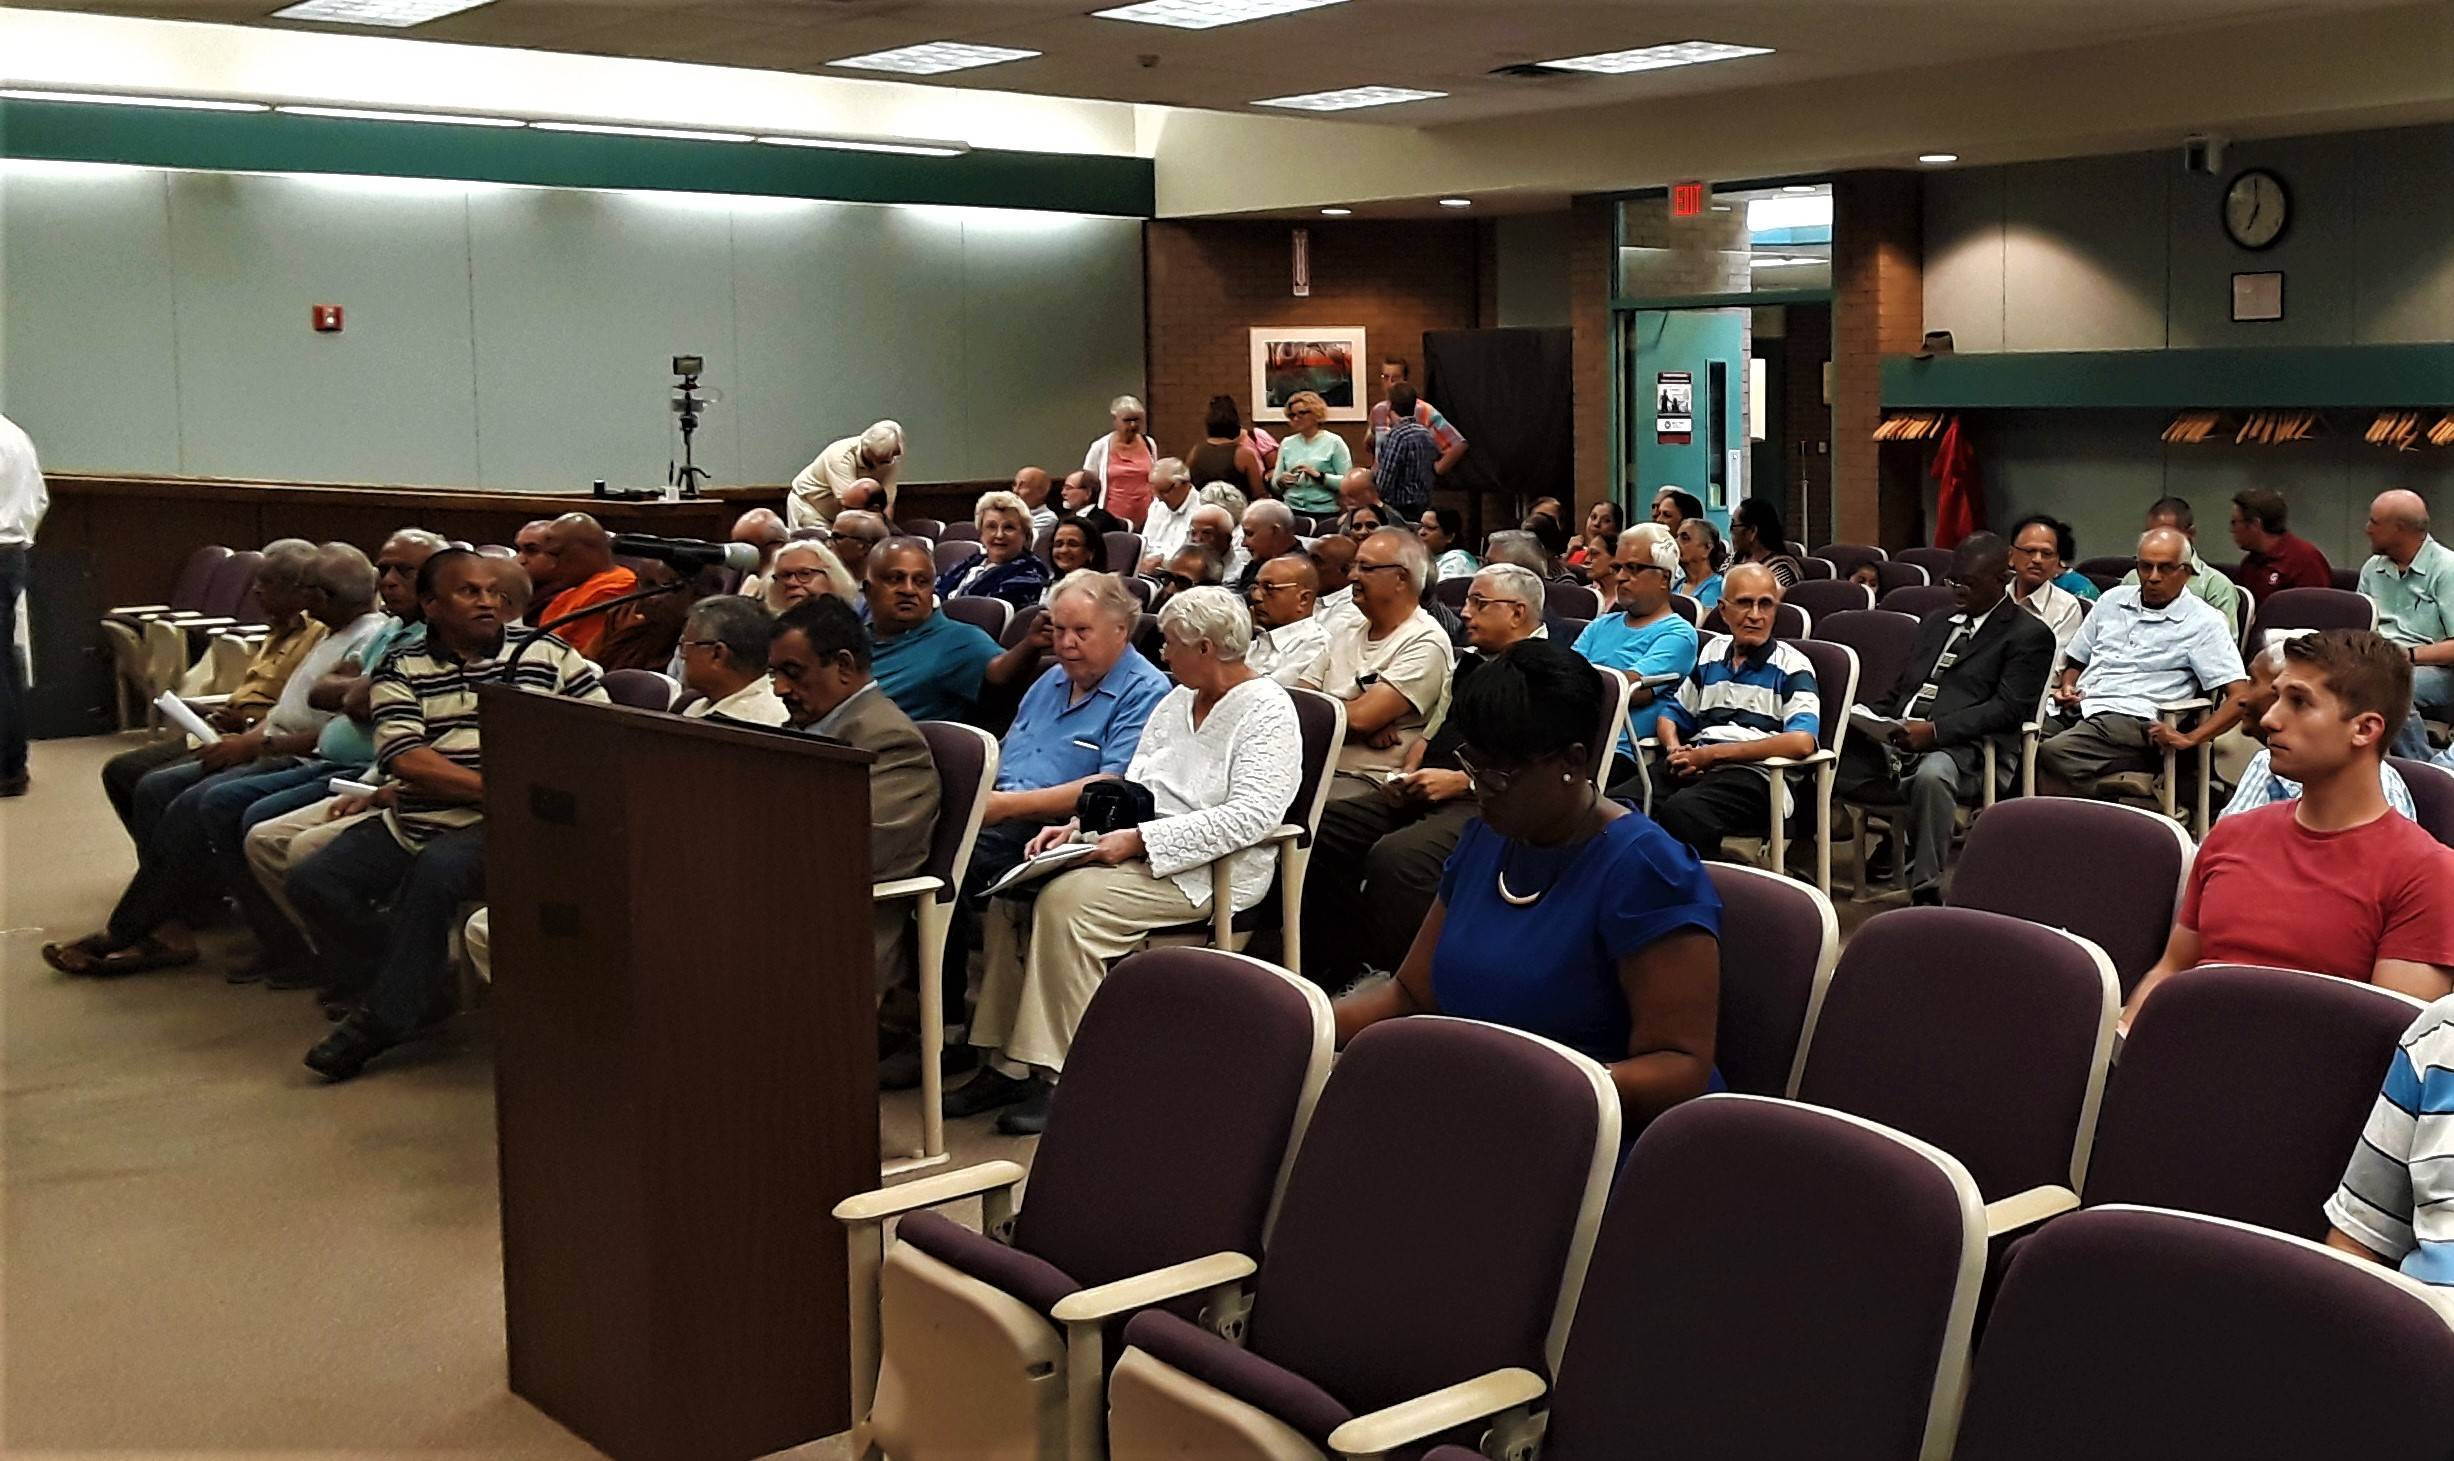 Public Speaks Out In Favor Of 'Peace' Monument At Council Meeting